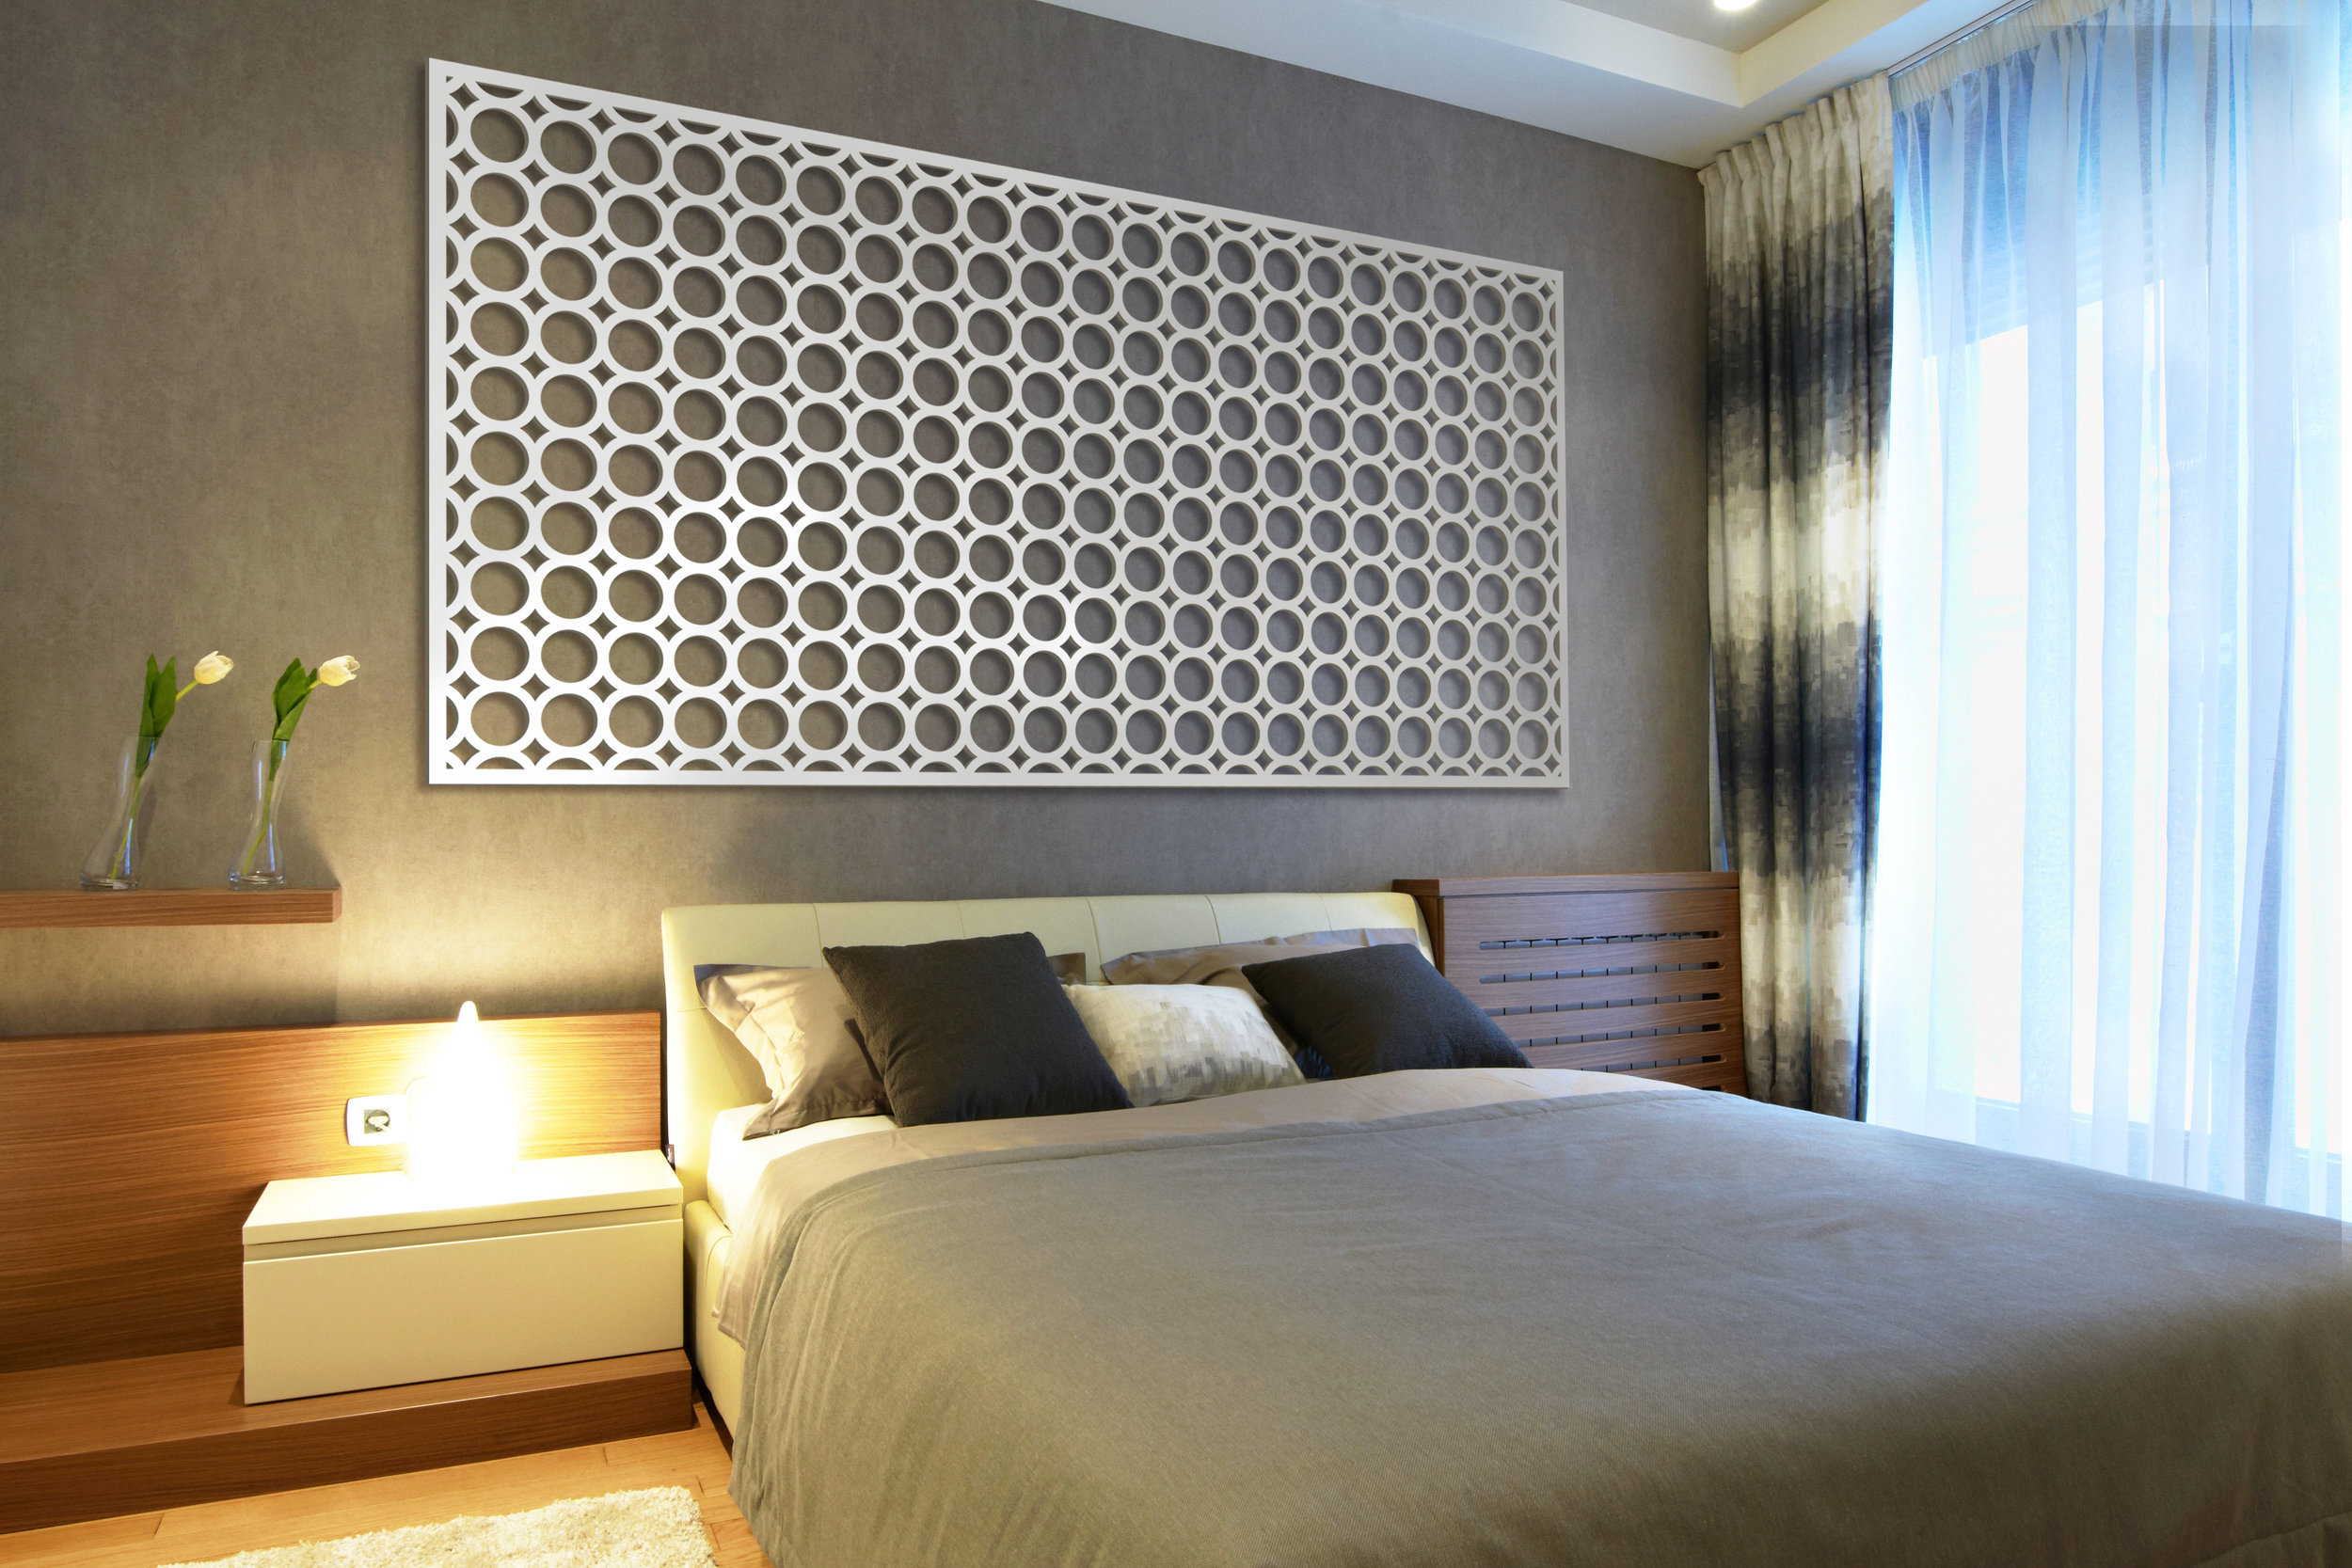 Installation Rendering C   Santa Monica decorative hotel wall panel - painted